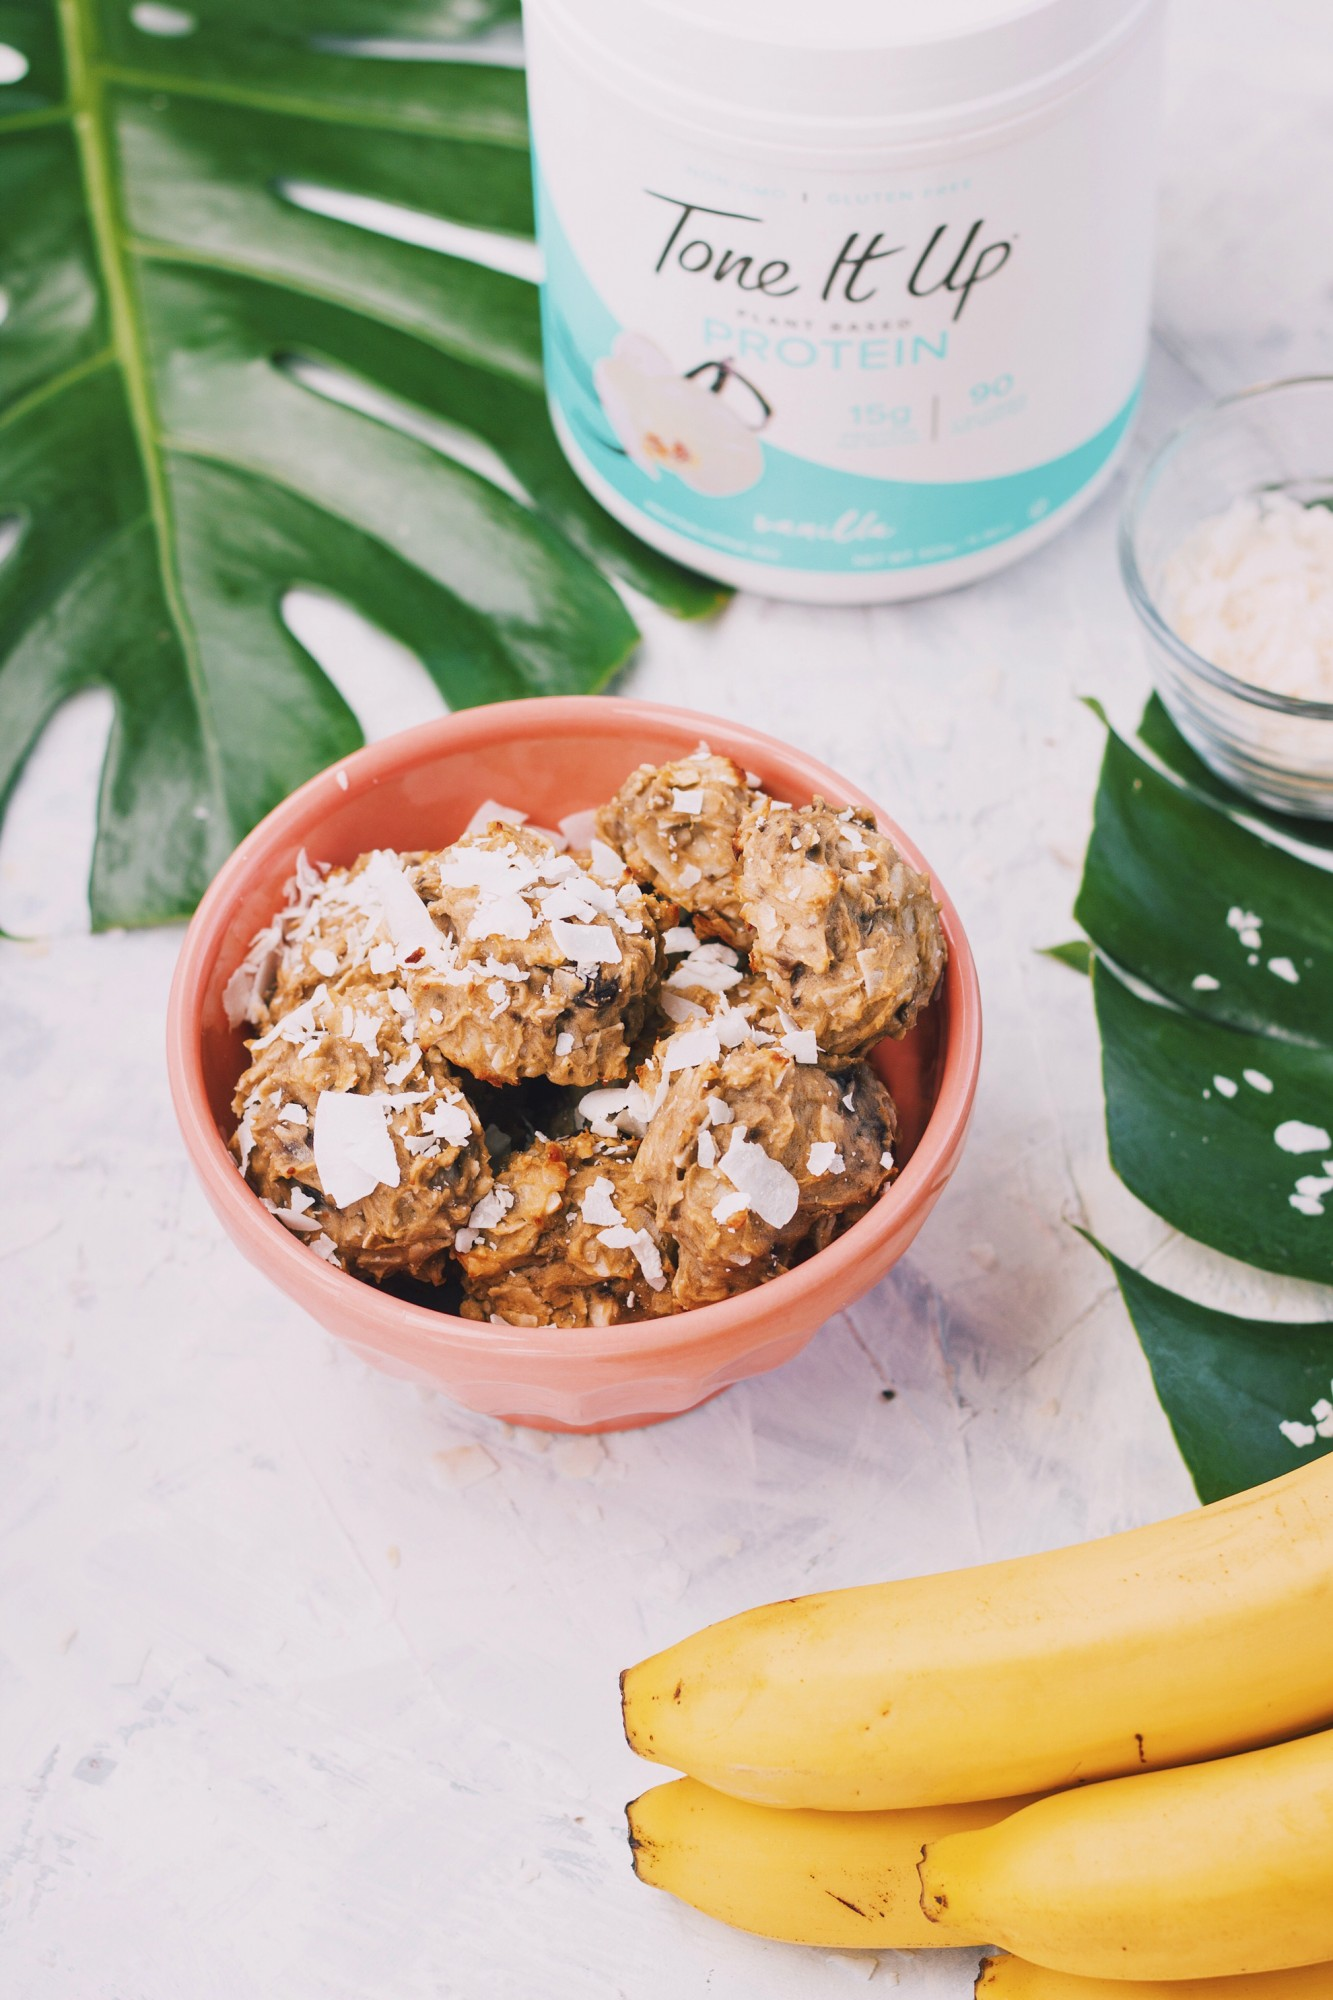 Tone It Up 7 Day Slim Down Healthy Cookie Recipe